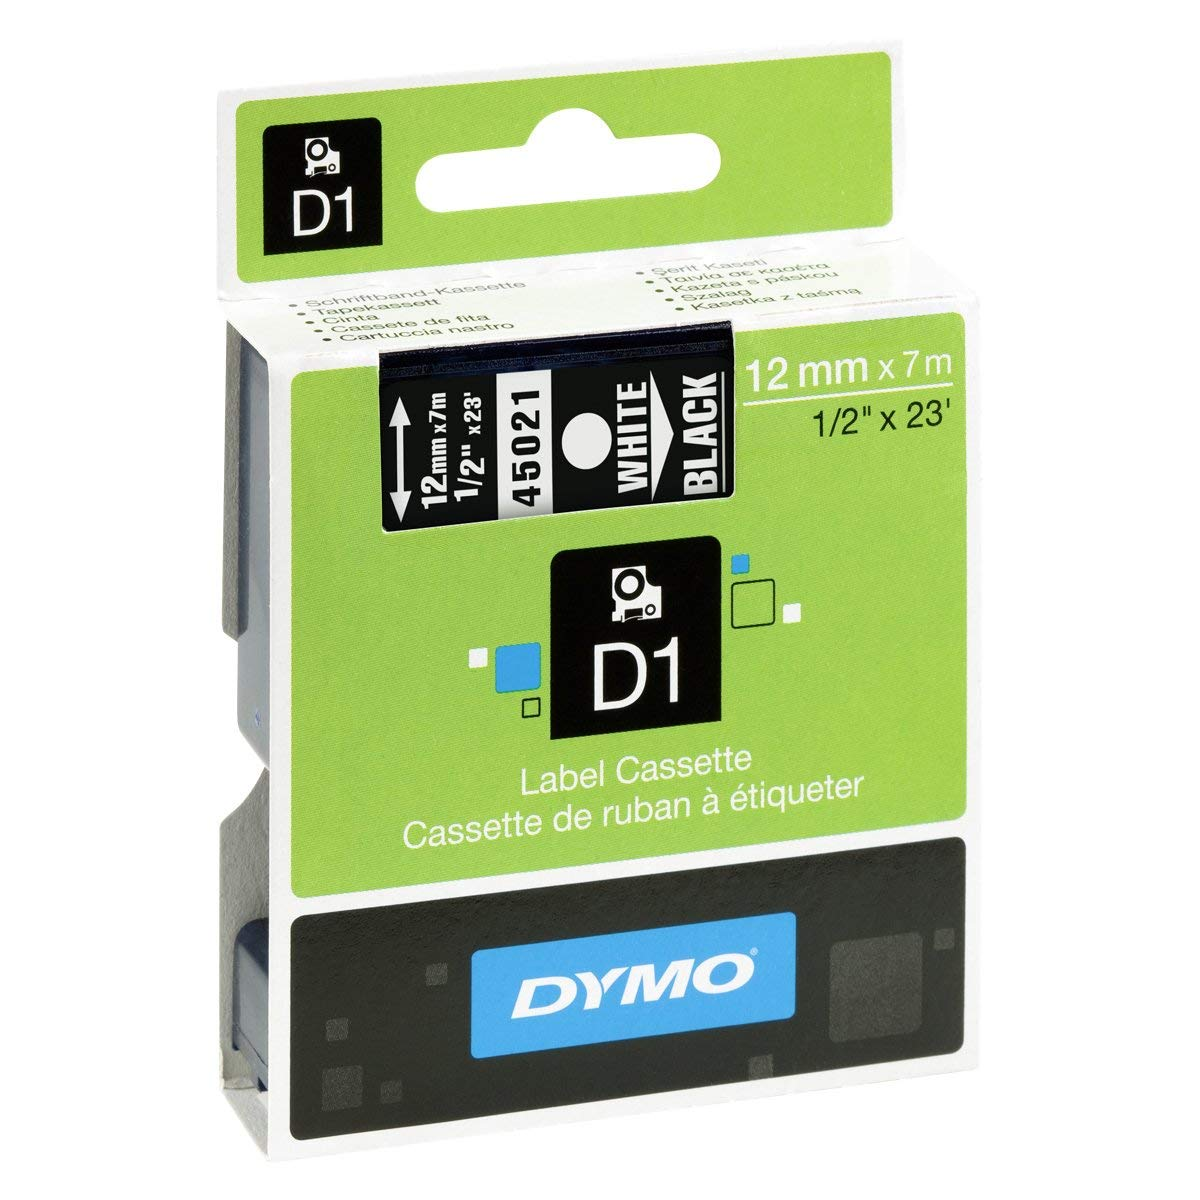 Dymo S0720610 (45021) White on Black D1 Label Tape 12 mm x 7 m - White on Black (pc)